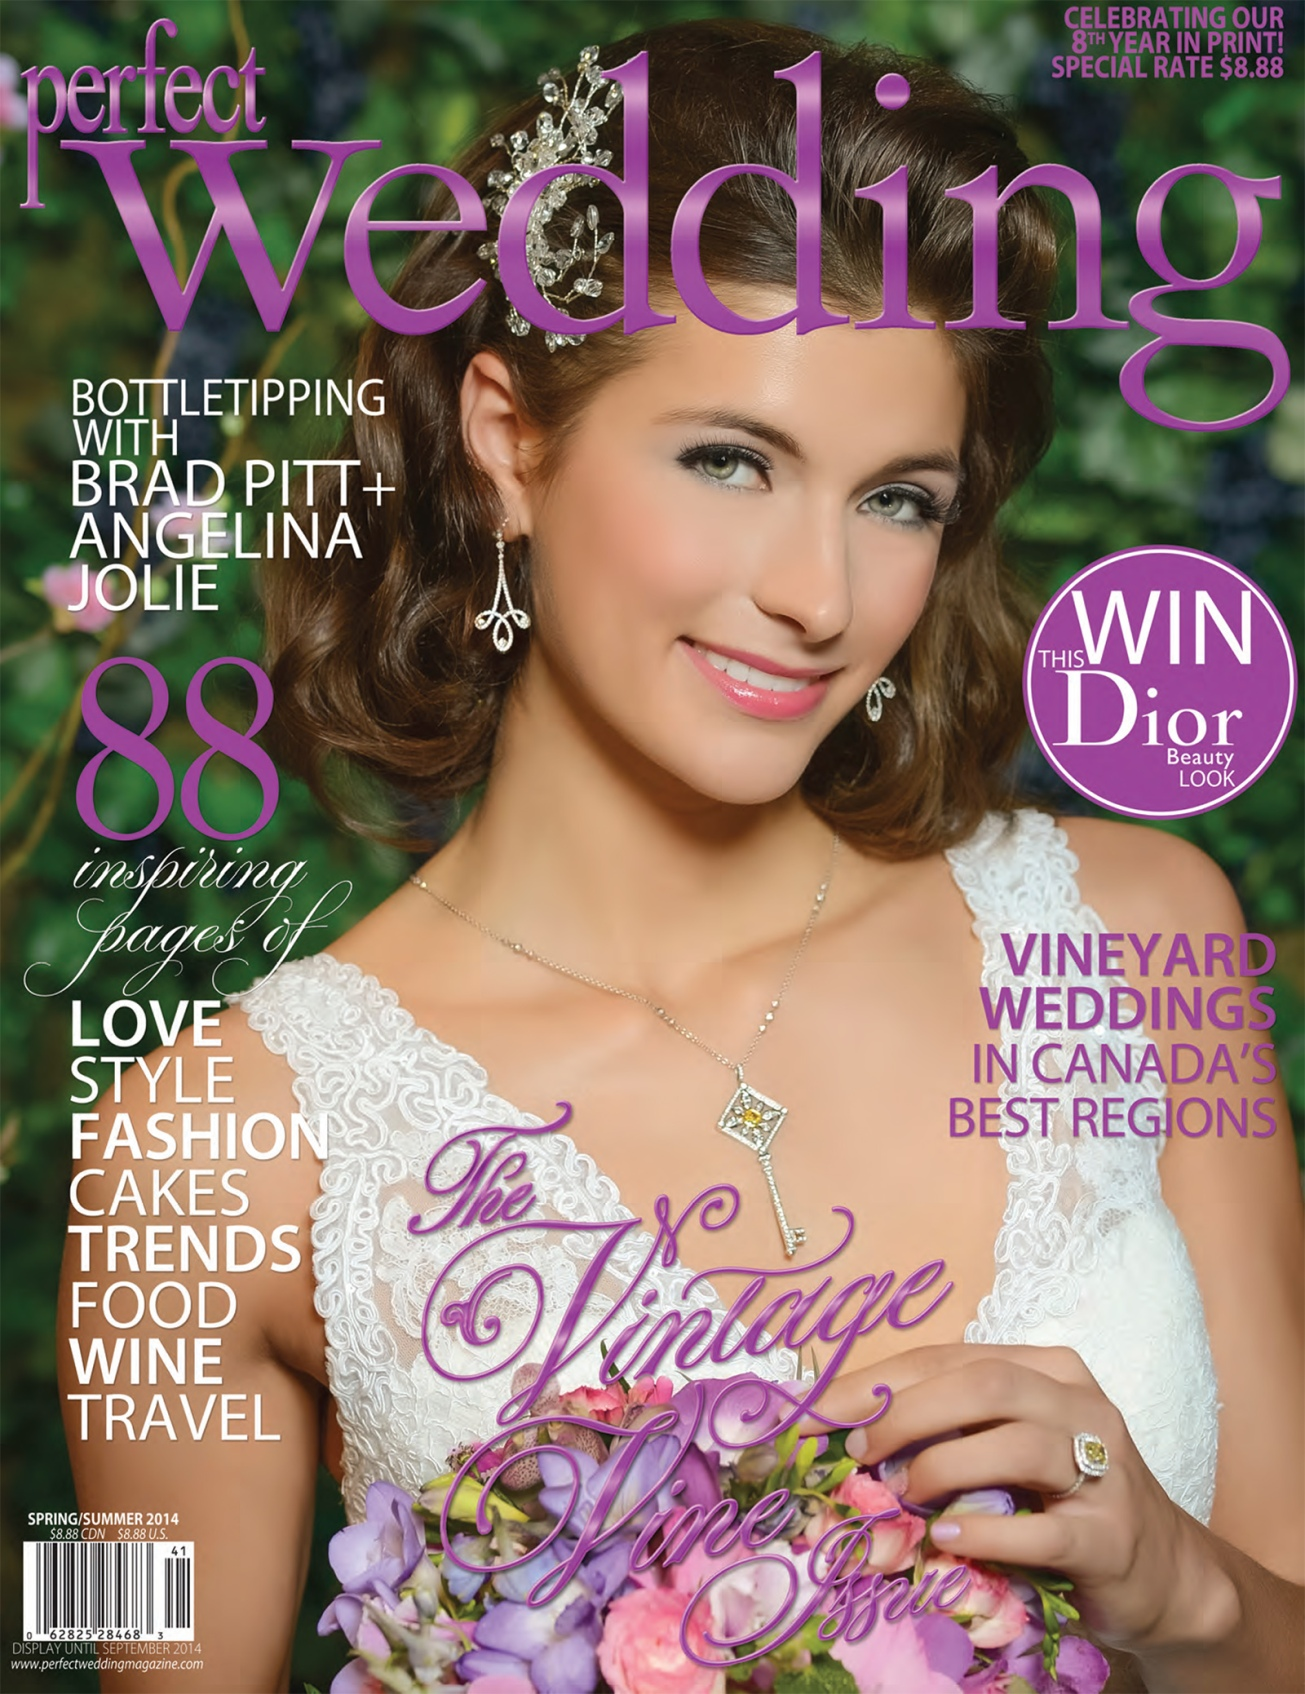 Perfect Wedding Magazine Spring / Summer 2014 Cover